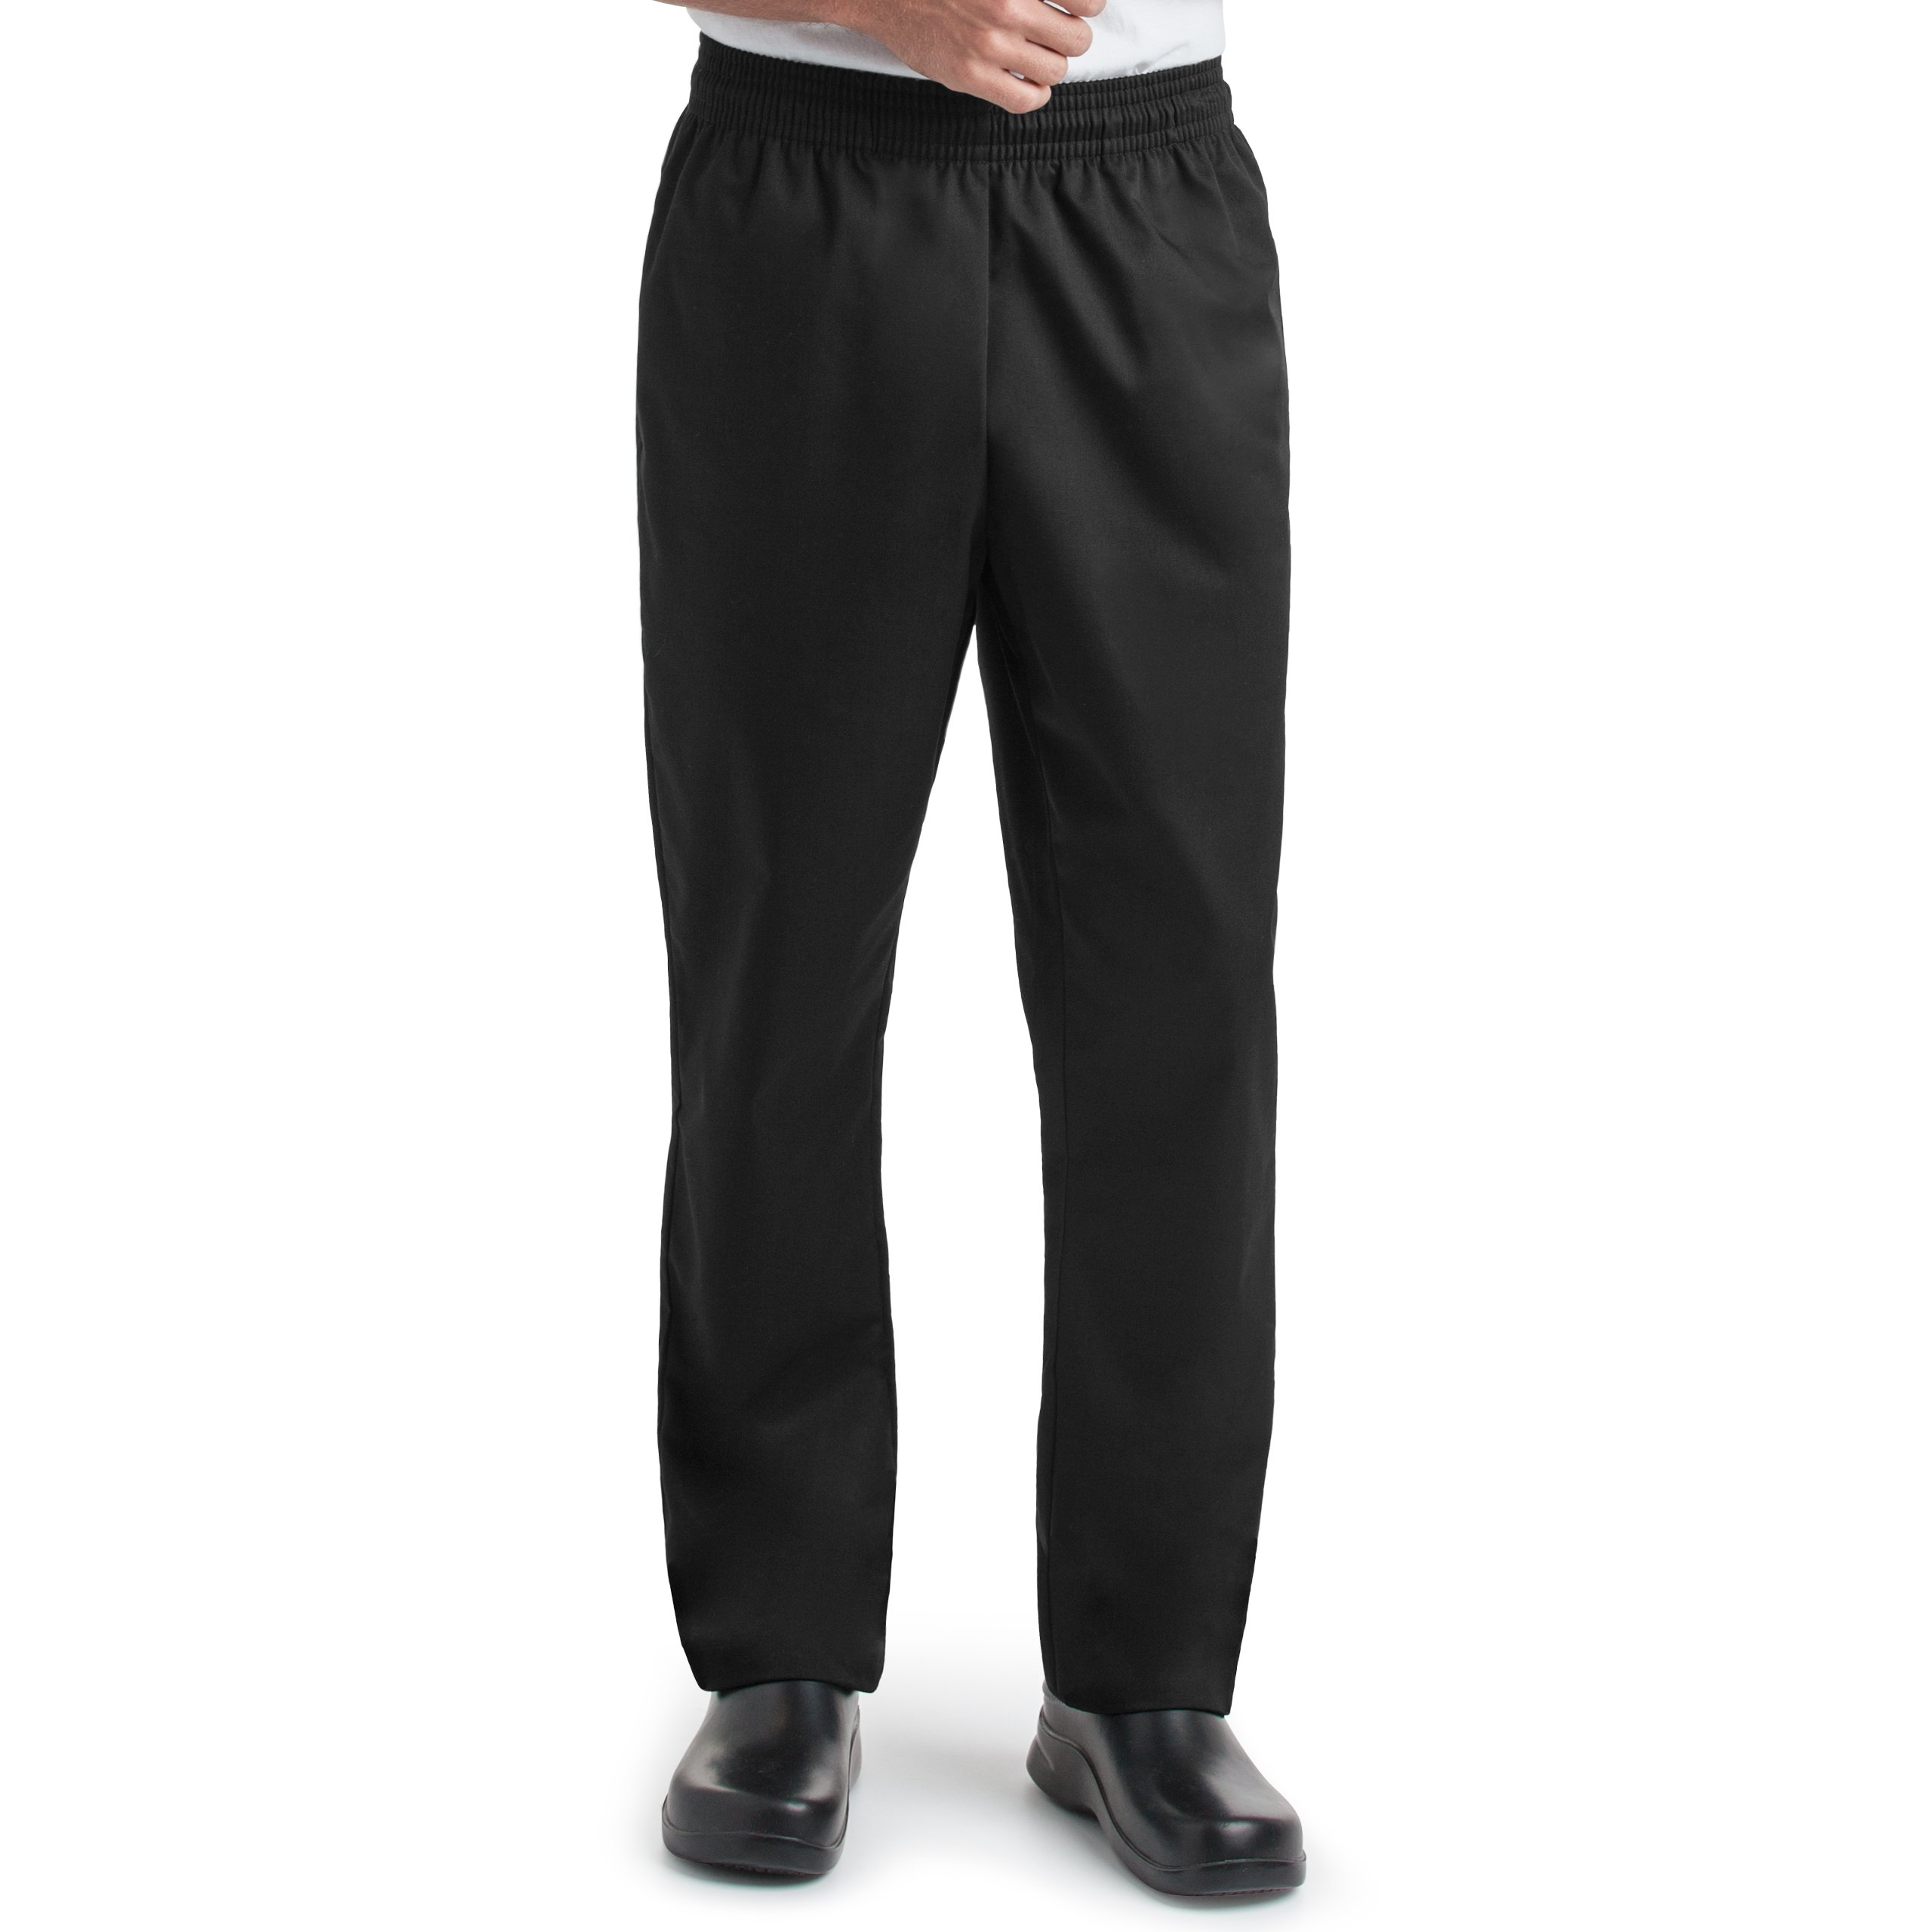 On The Line Unisex Chef Baggy Pants/Elastic Waistband with Tapered Leg/2 Side Pockets and 2 Back Pockets (S-2X) (XX-Large) by On The Line